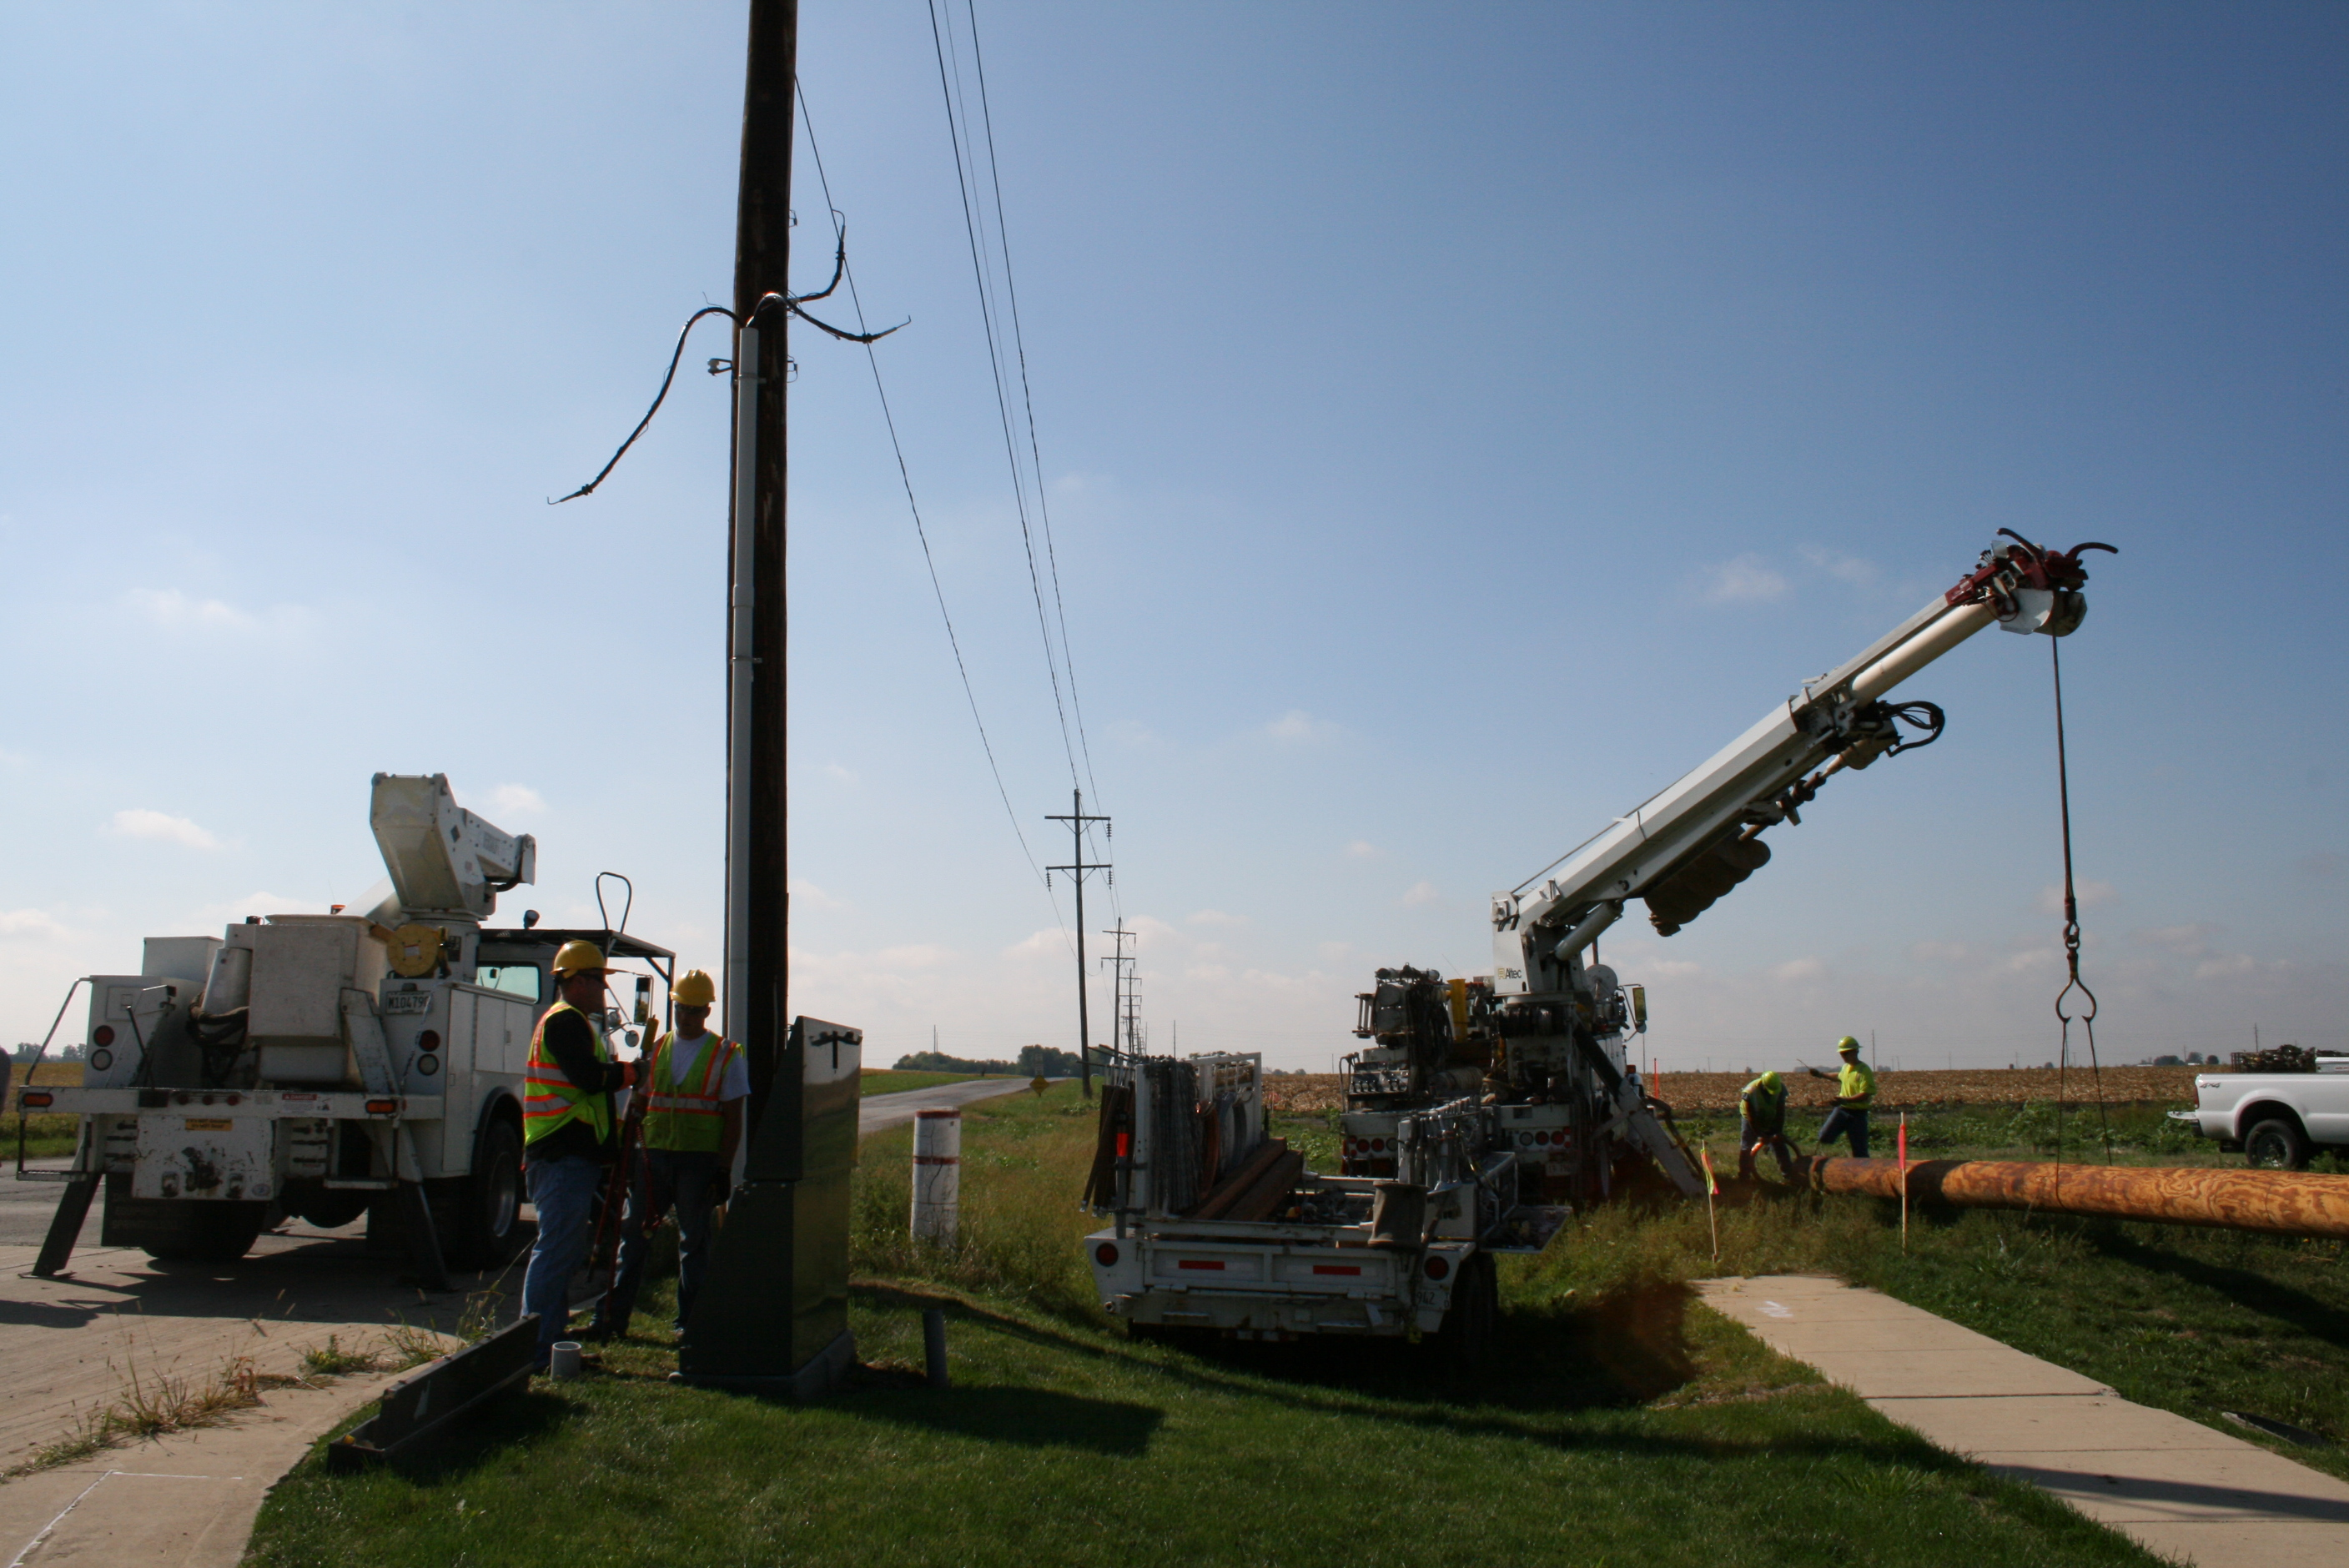 Utility Crews Working on Lines